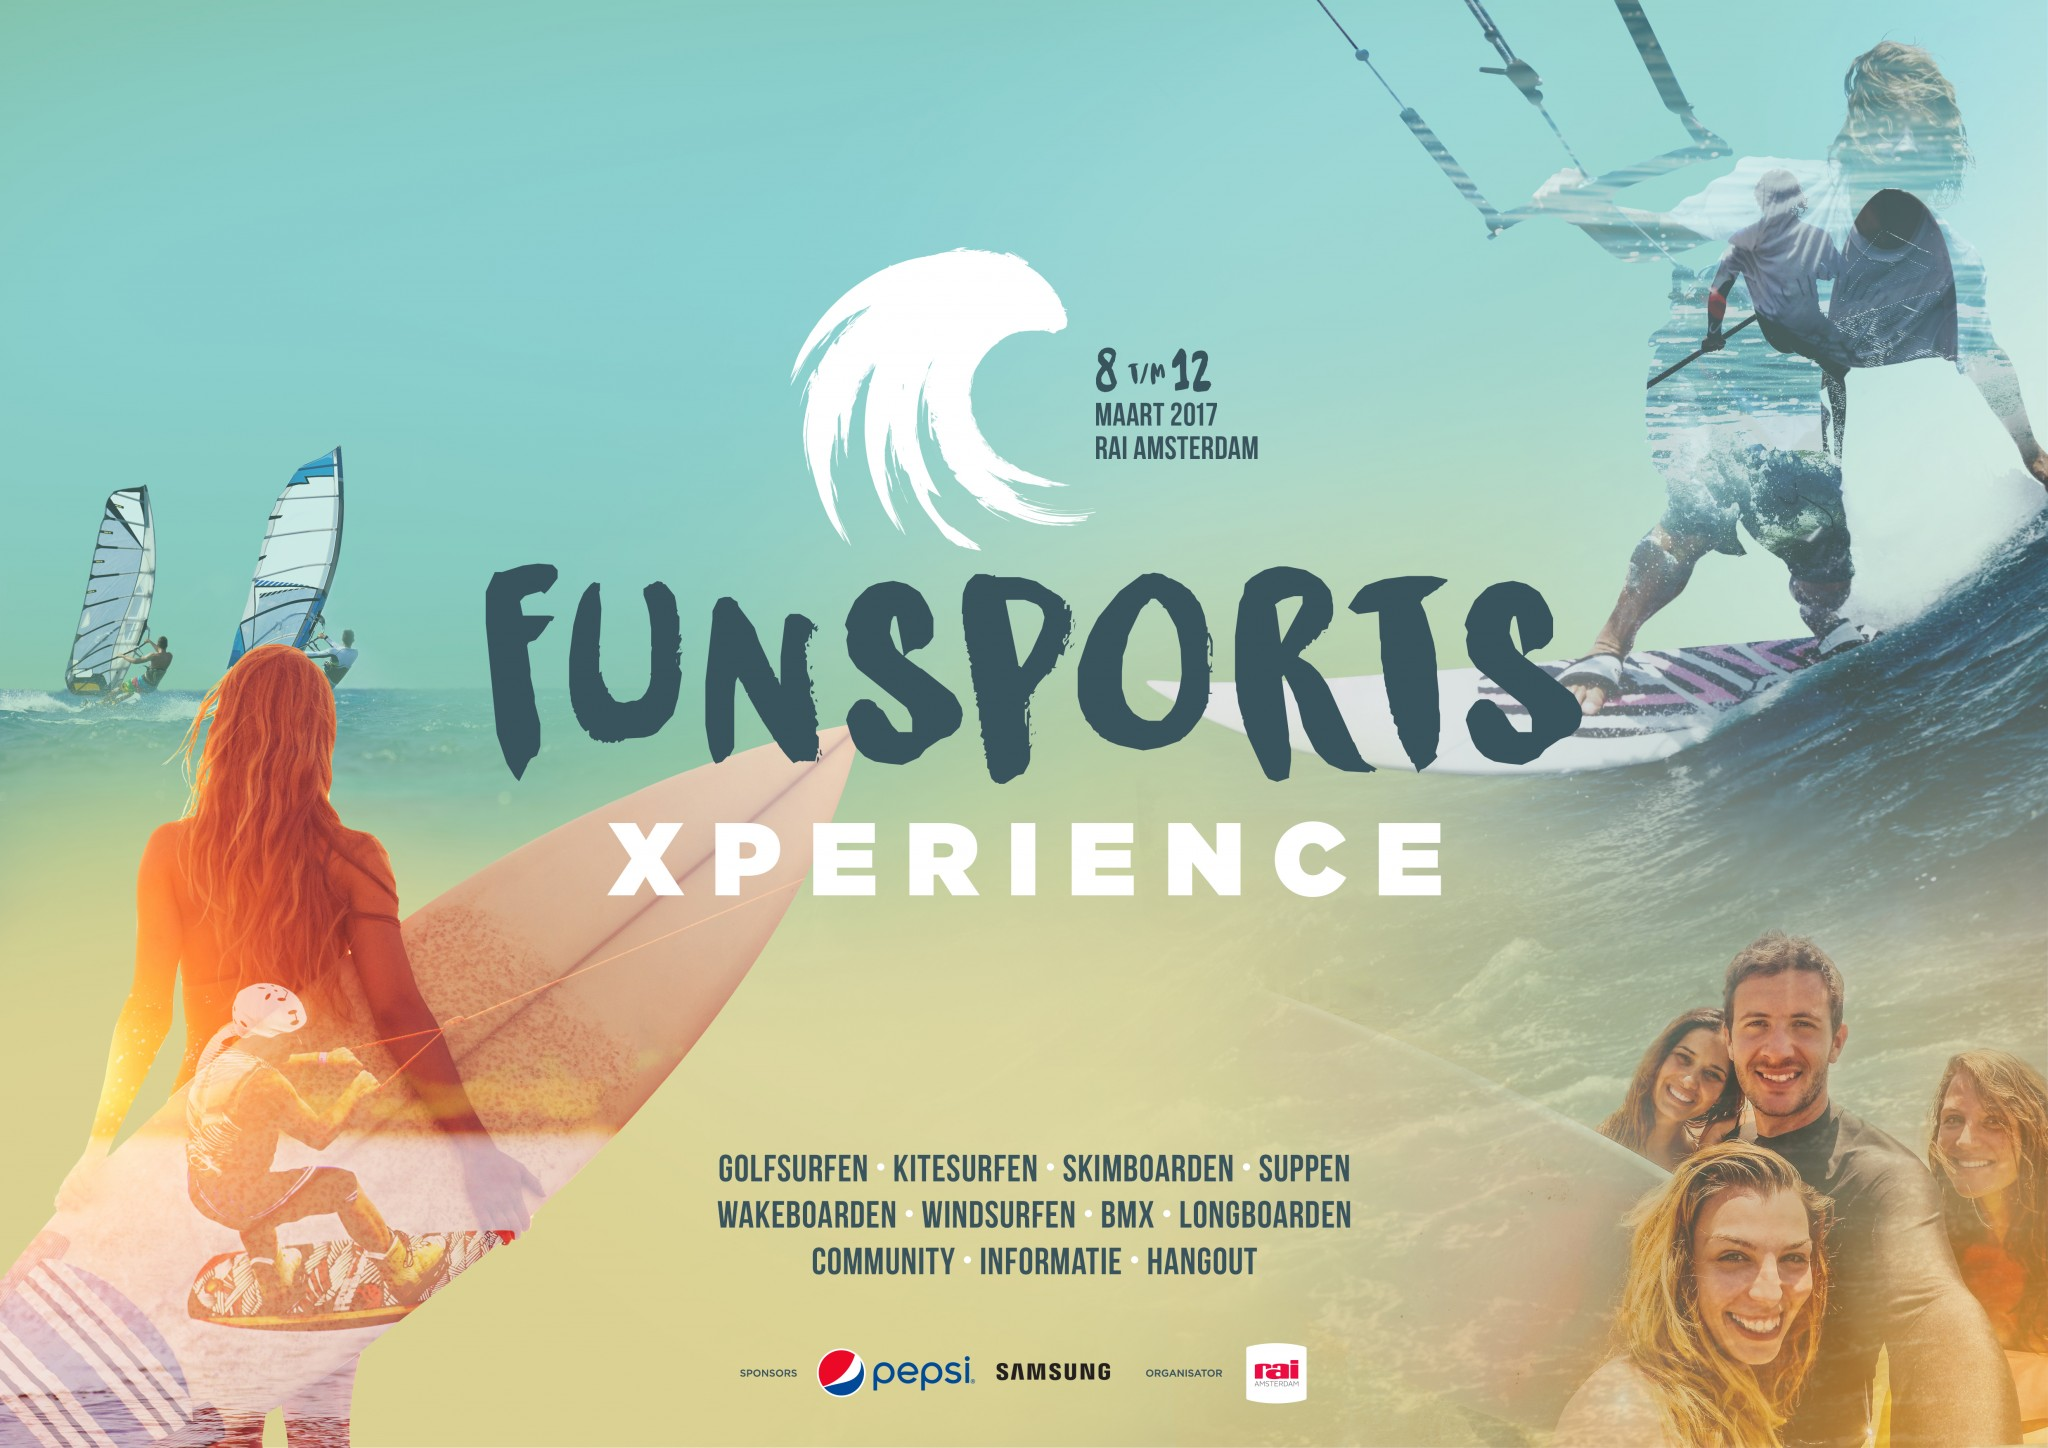 Funsport-Xperience